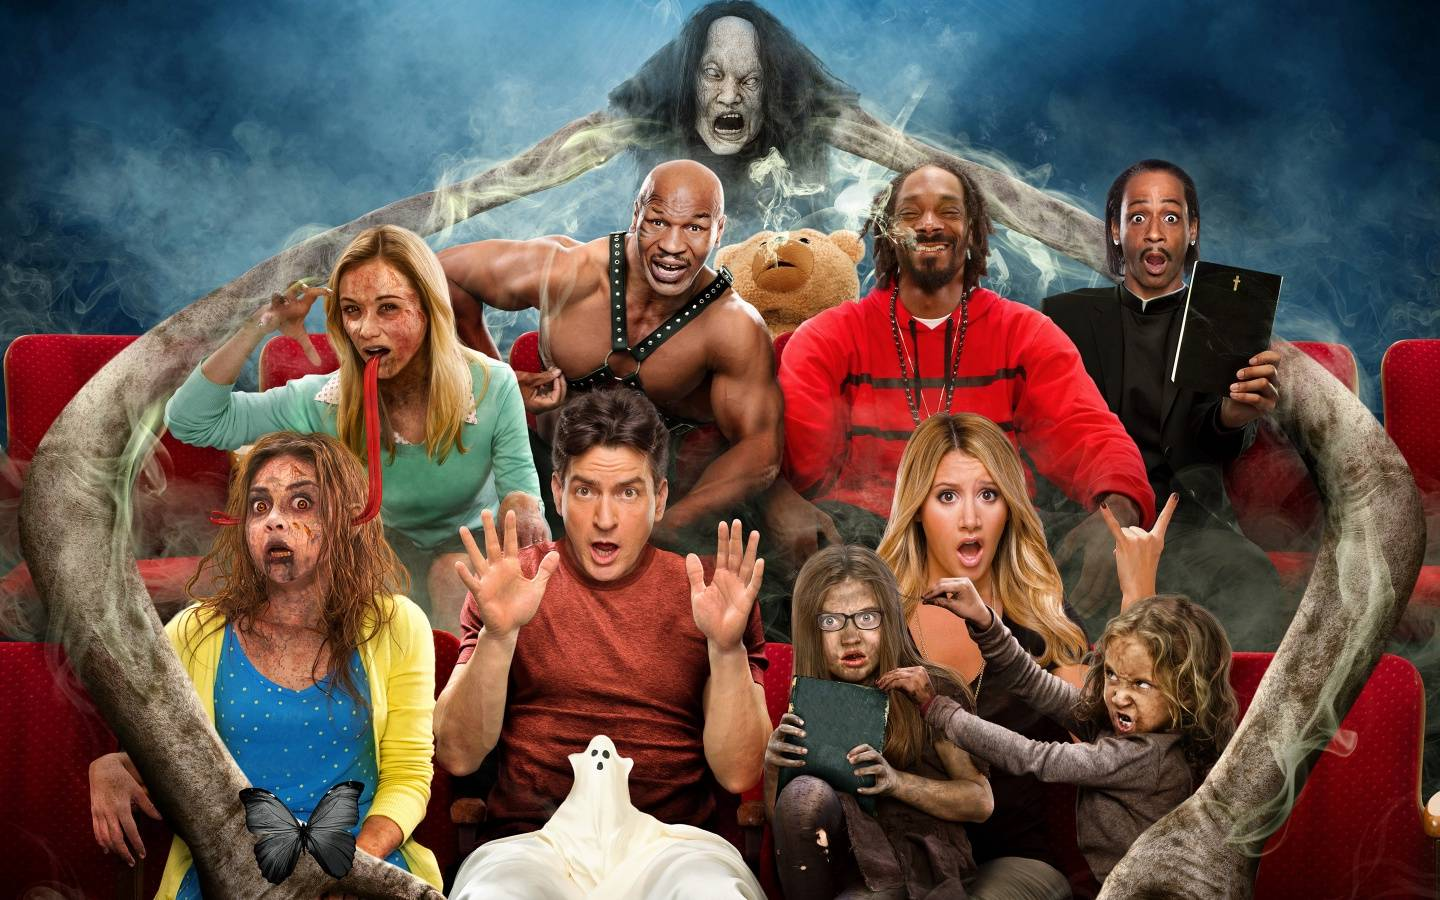 Scary movie 5 l 39 ennesimo episodio della saga parodica - Scary movie 5 wallpaper ...